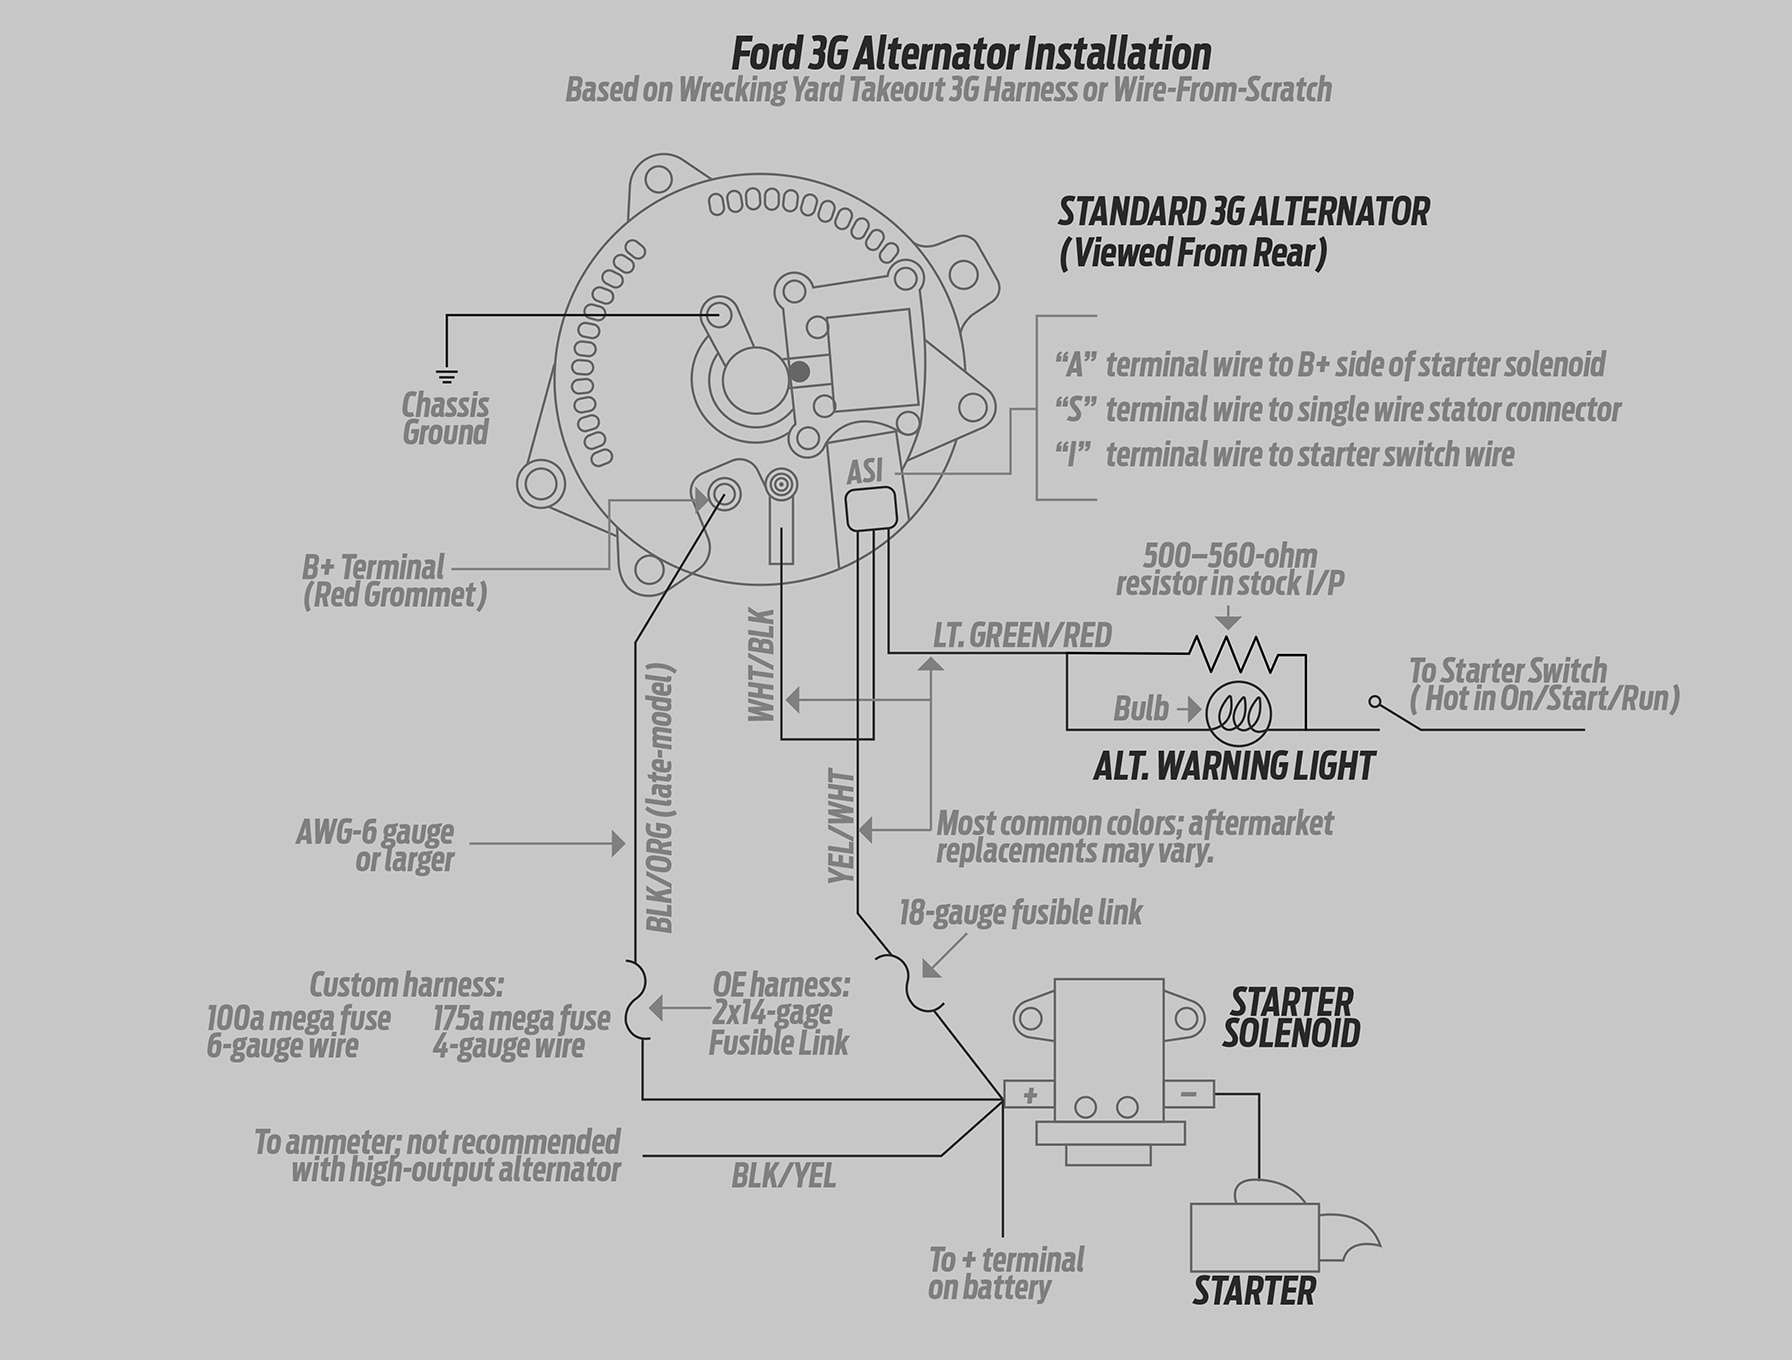 hight resolution of ford 1g to 3g alternator wiring harness wiring diagram schematic 1g alternator wiring diagram